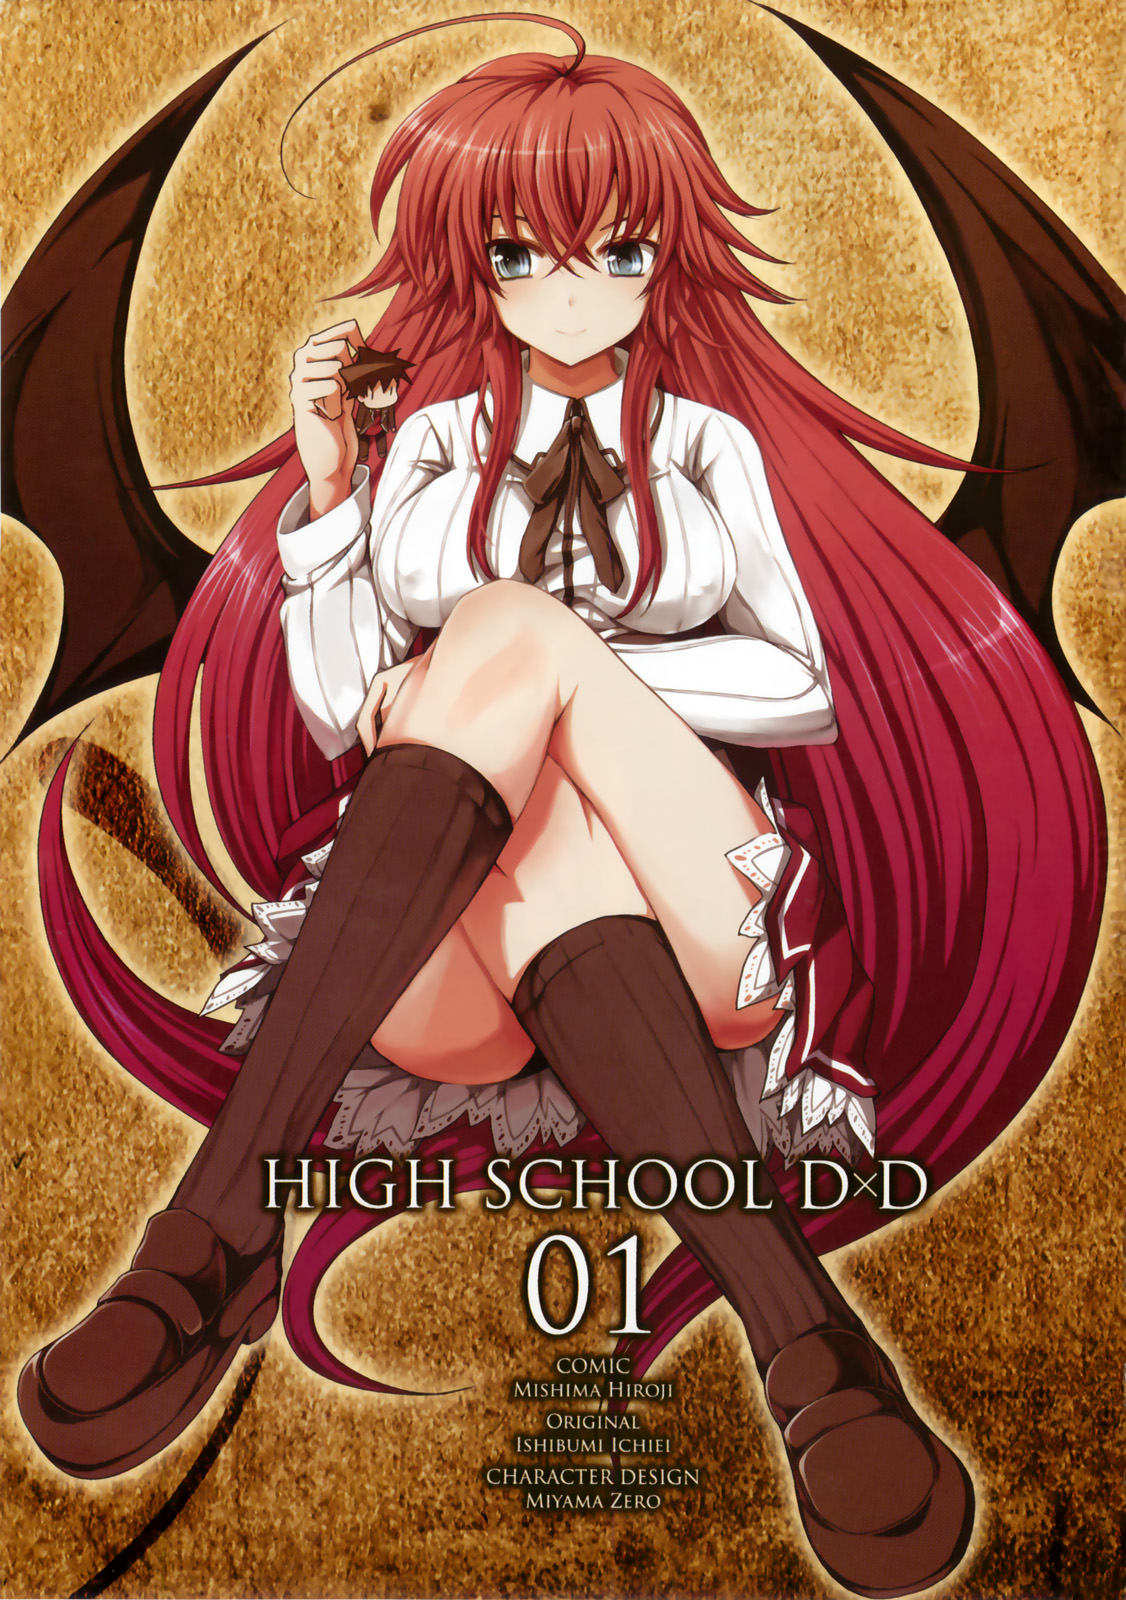 High School DxD manga vol.01 (1)